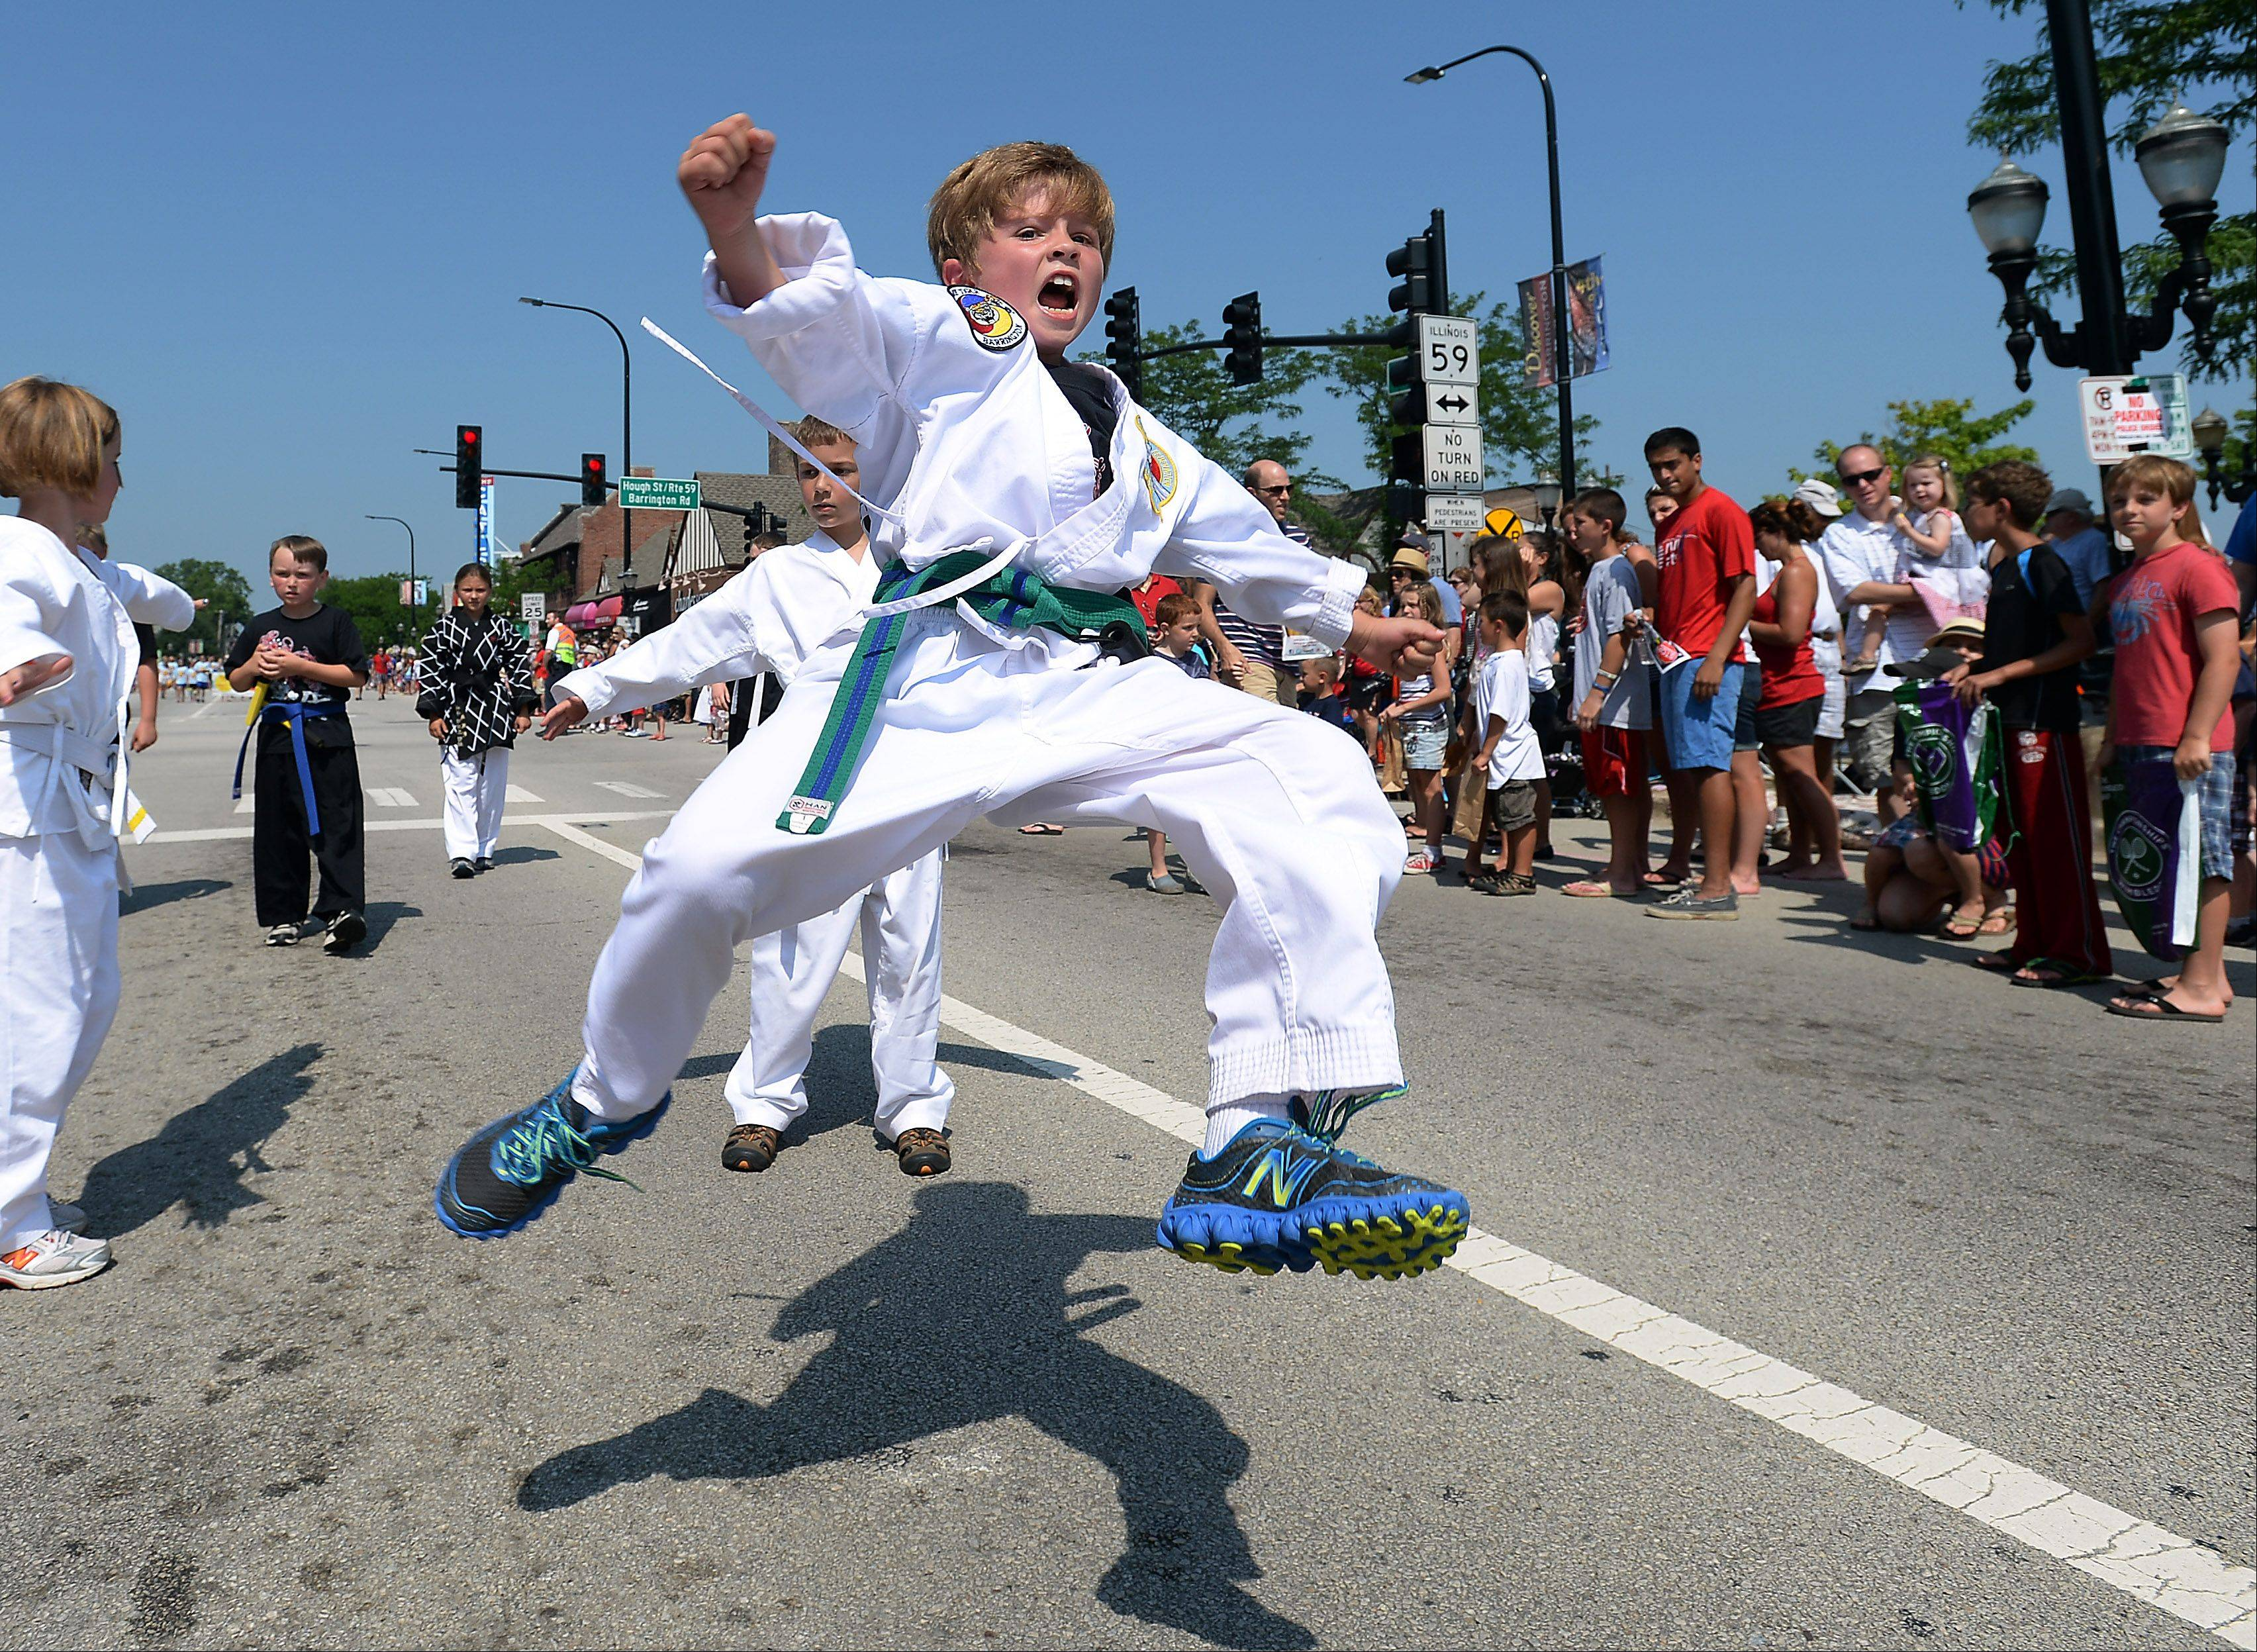 Barrington's Fourth of July parade kicks off downtown with Ryan Devona, 8, of Barrington kicking it down the parade route as part of their Tiger Martial Arts.